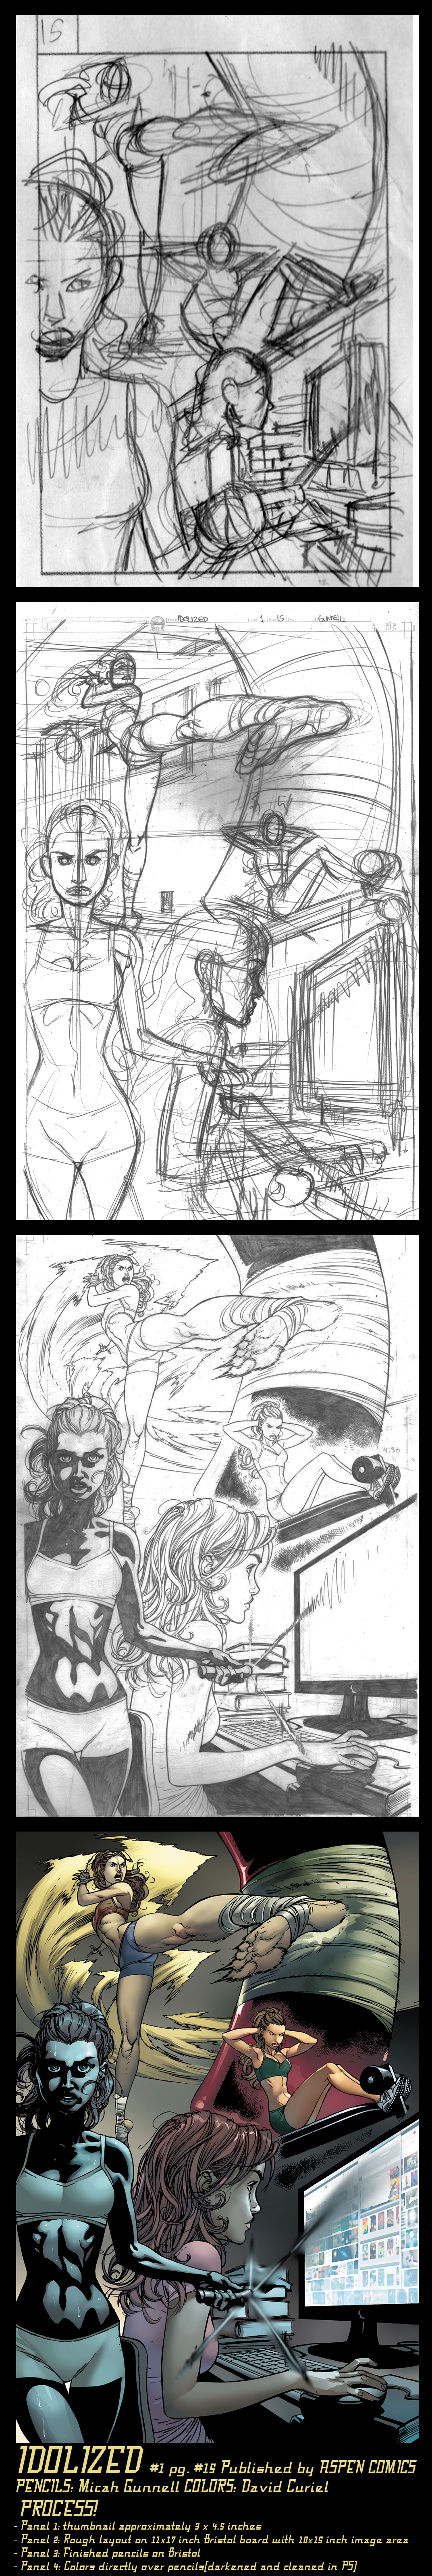 Idolized 1 pg 15 FULL PROCESS by MicahJGunnell